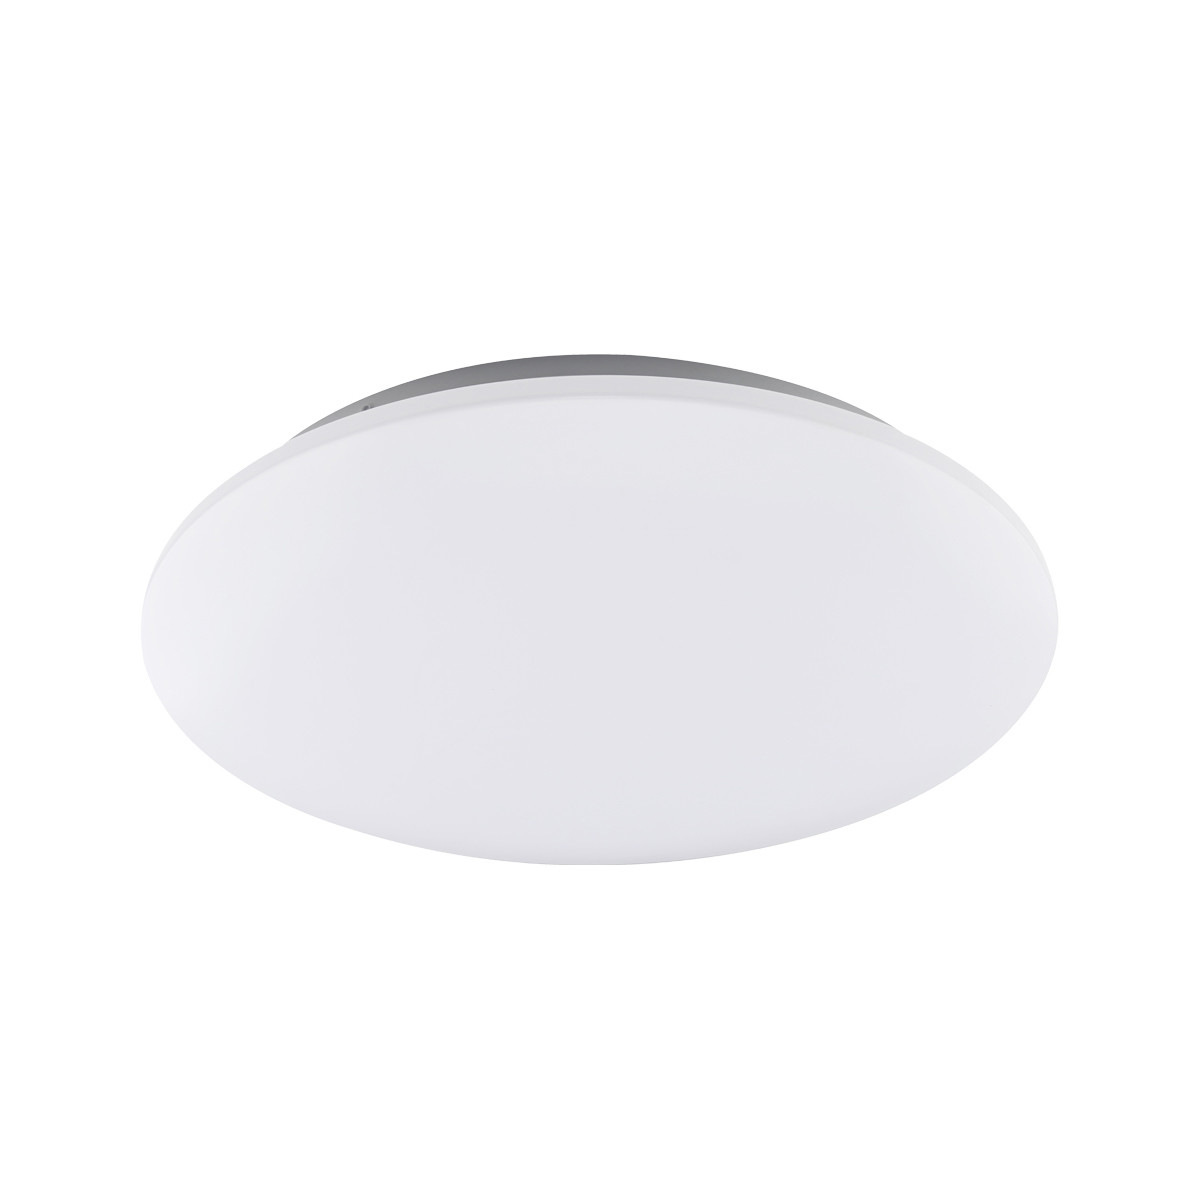 Zero II Flush 48cm Round 50W LED 5000K, 3800lm, White